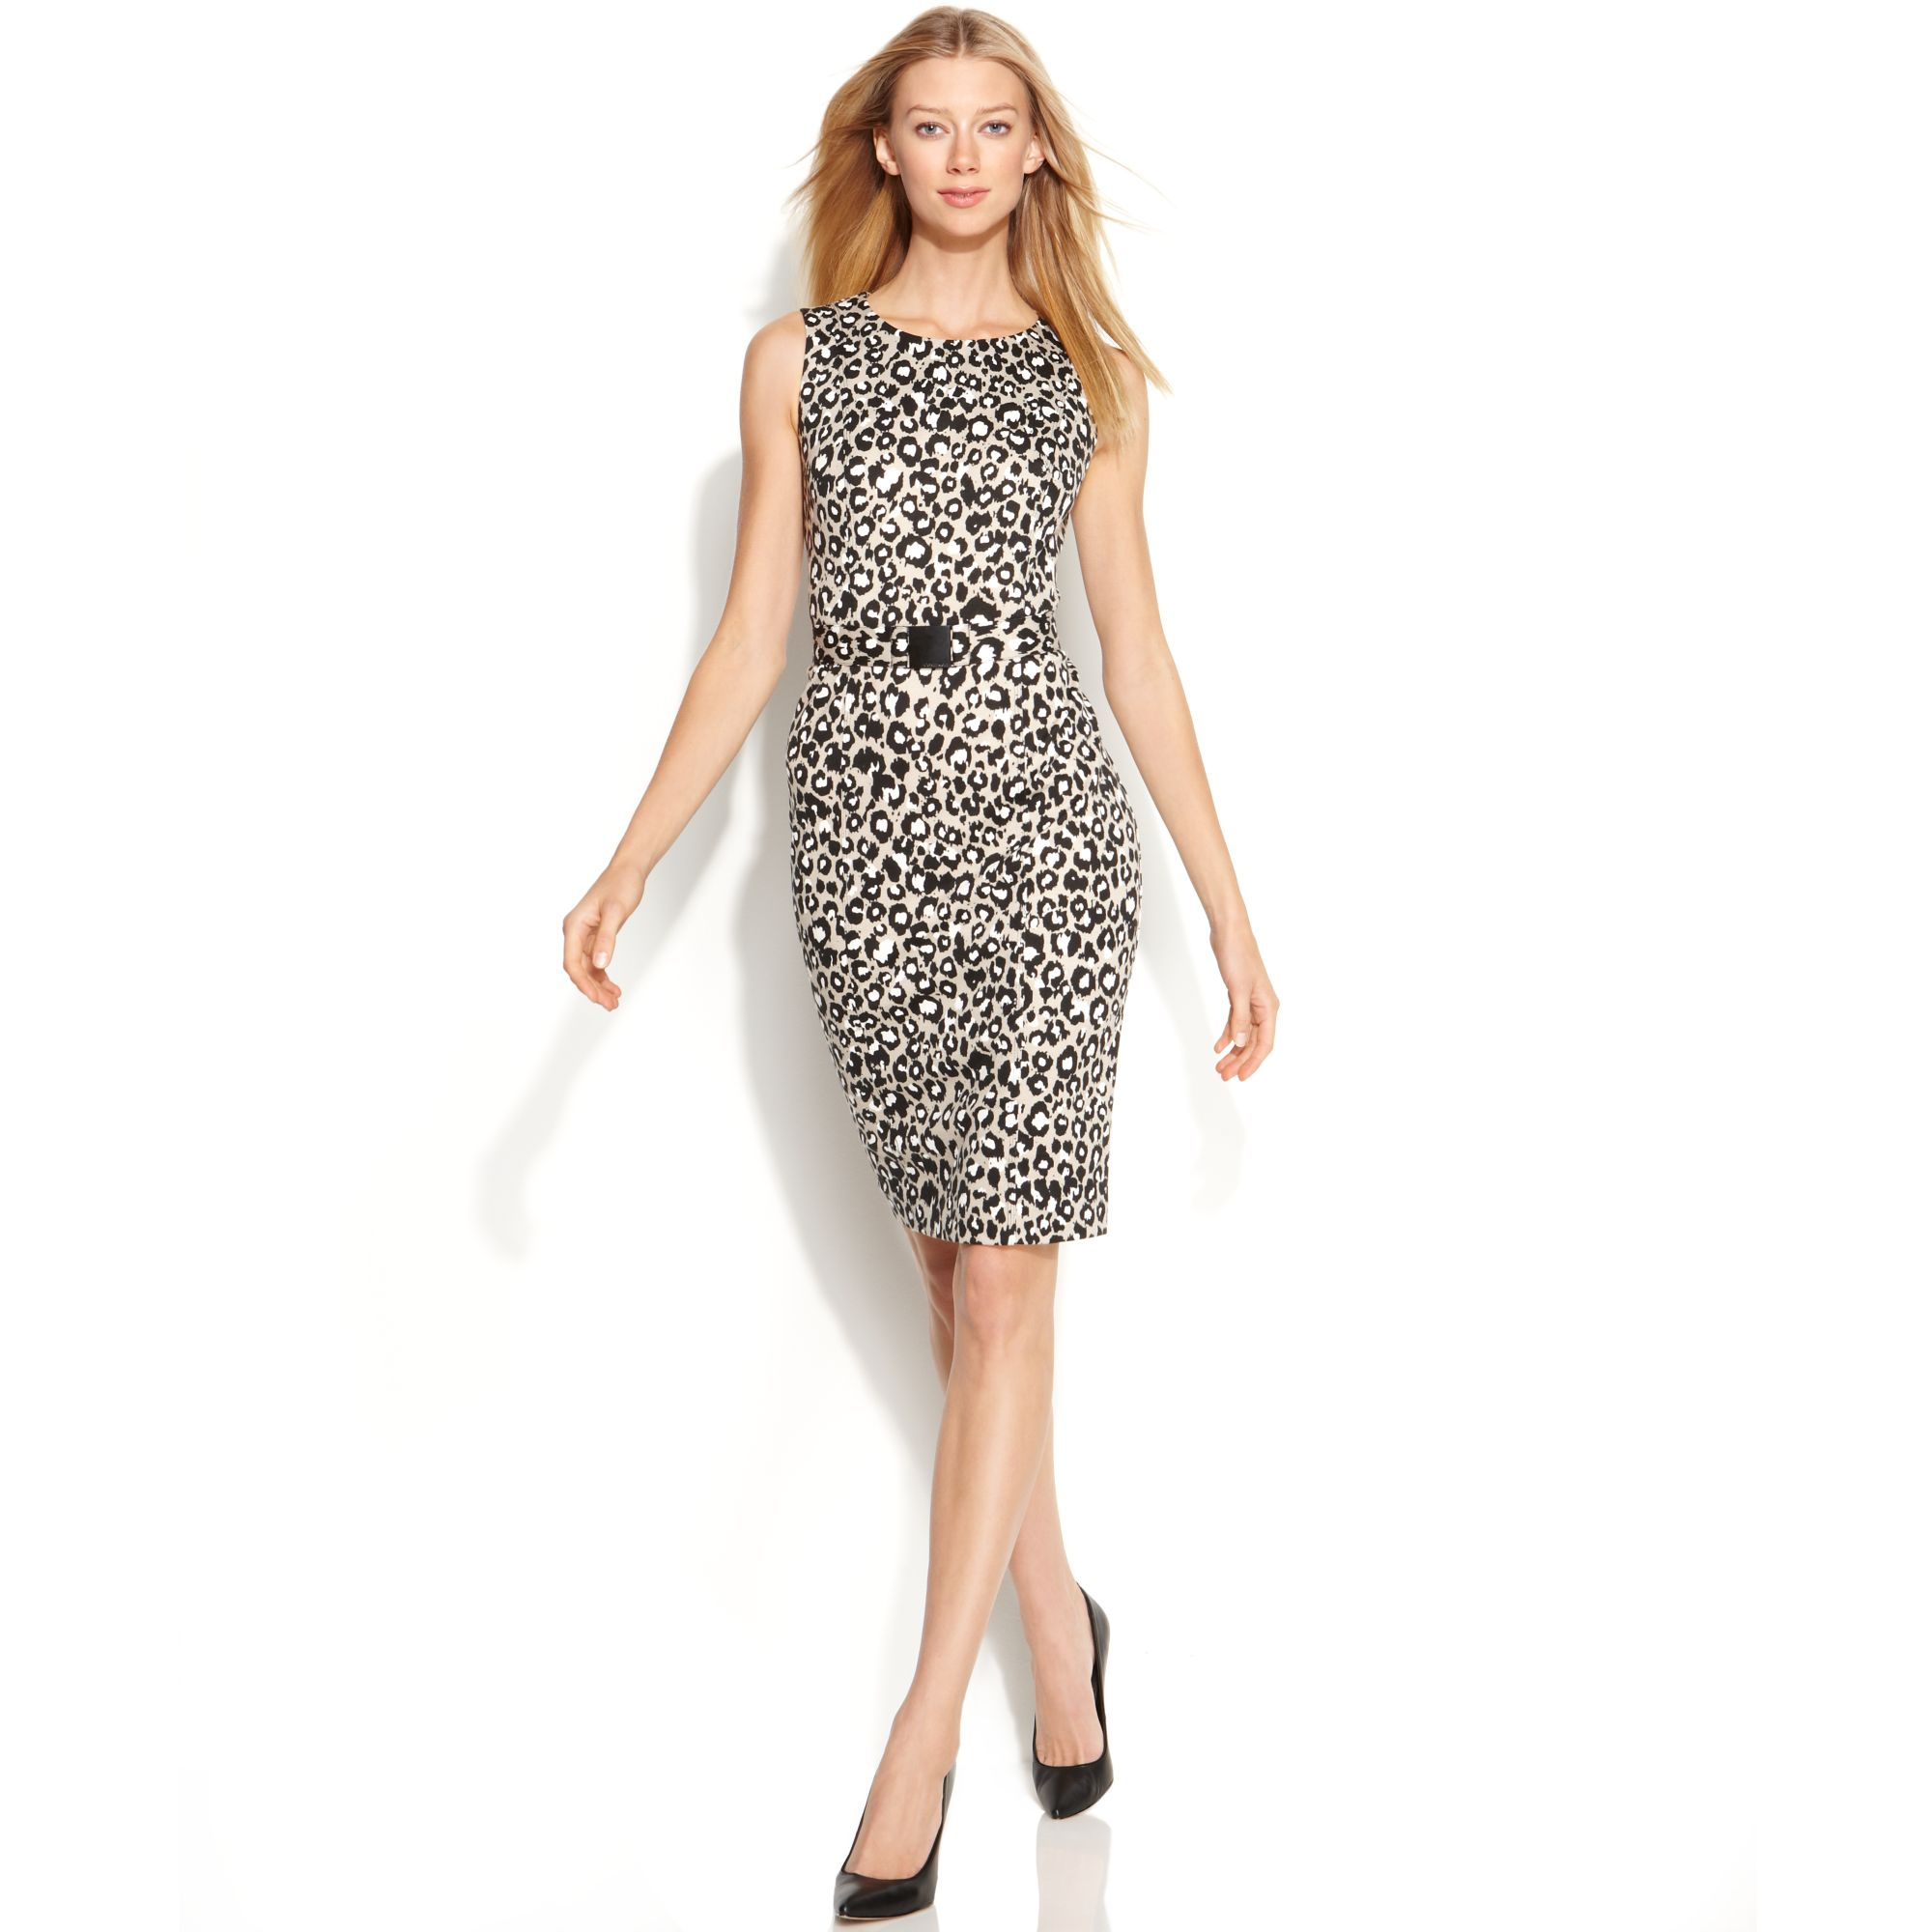 ffde39637ffde0 Lyst - Calvin Klein Sleeveless Leopard Print Belted Sheath Dress